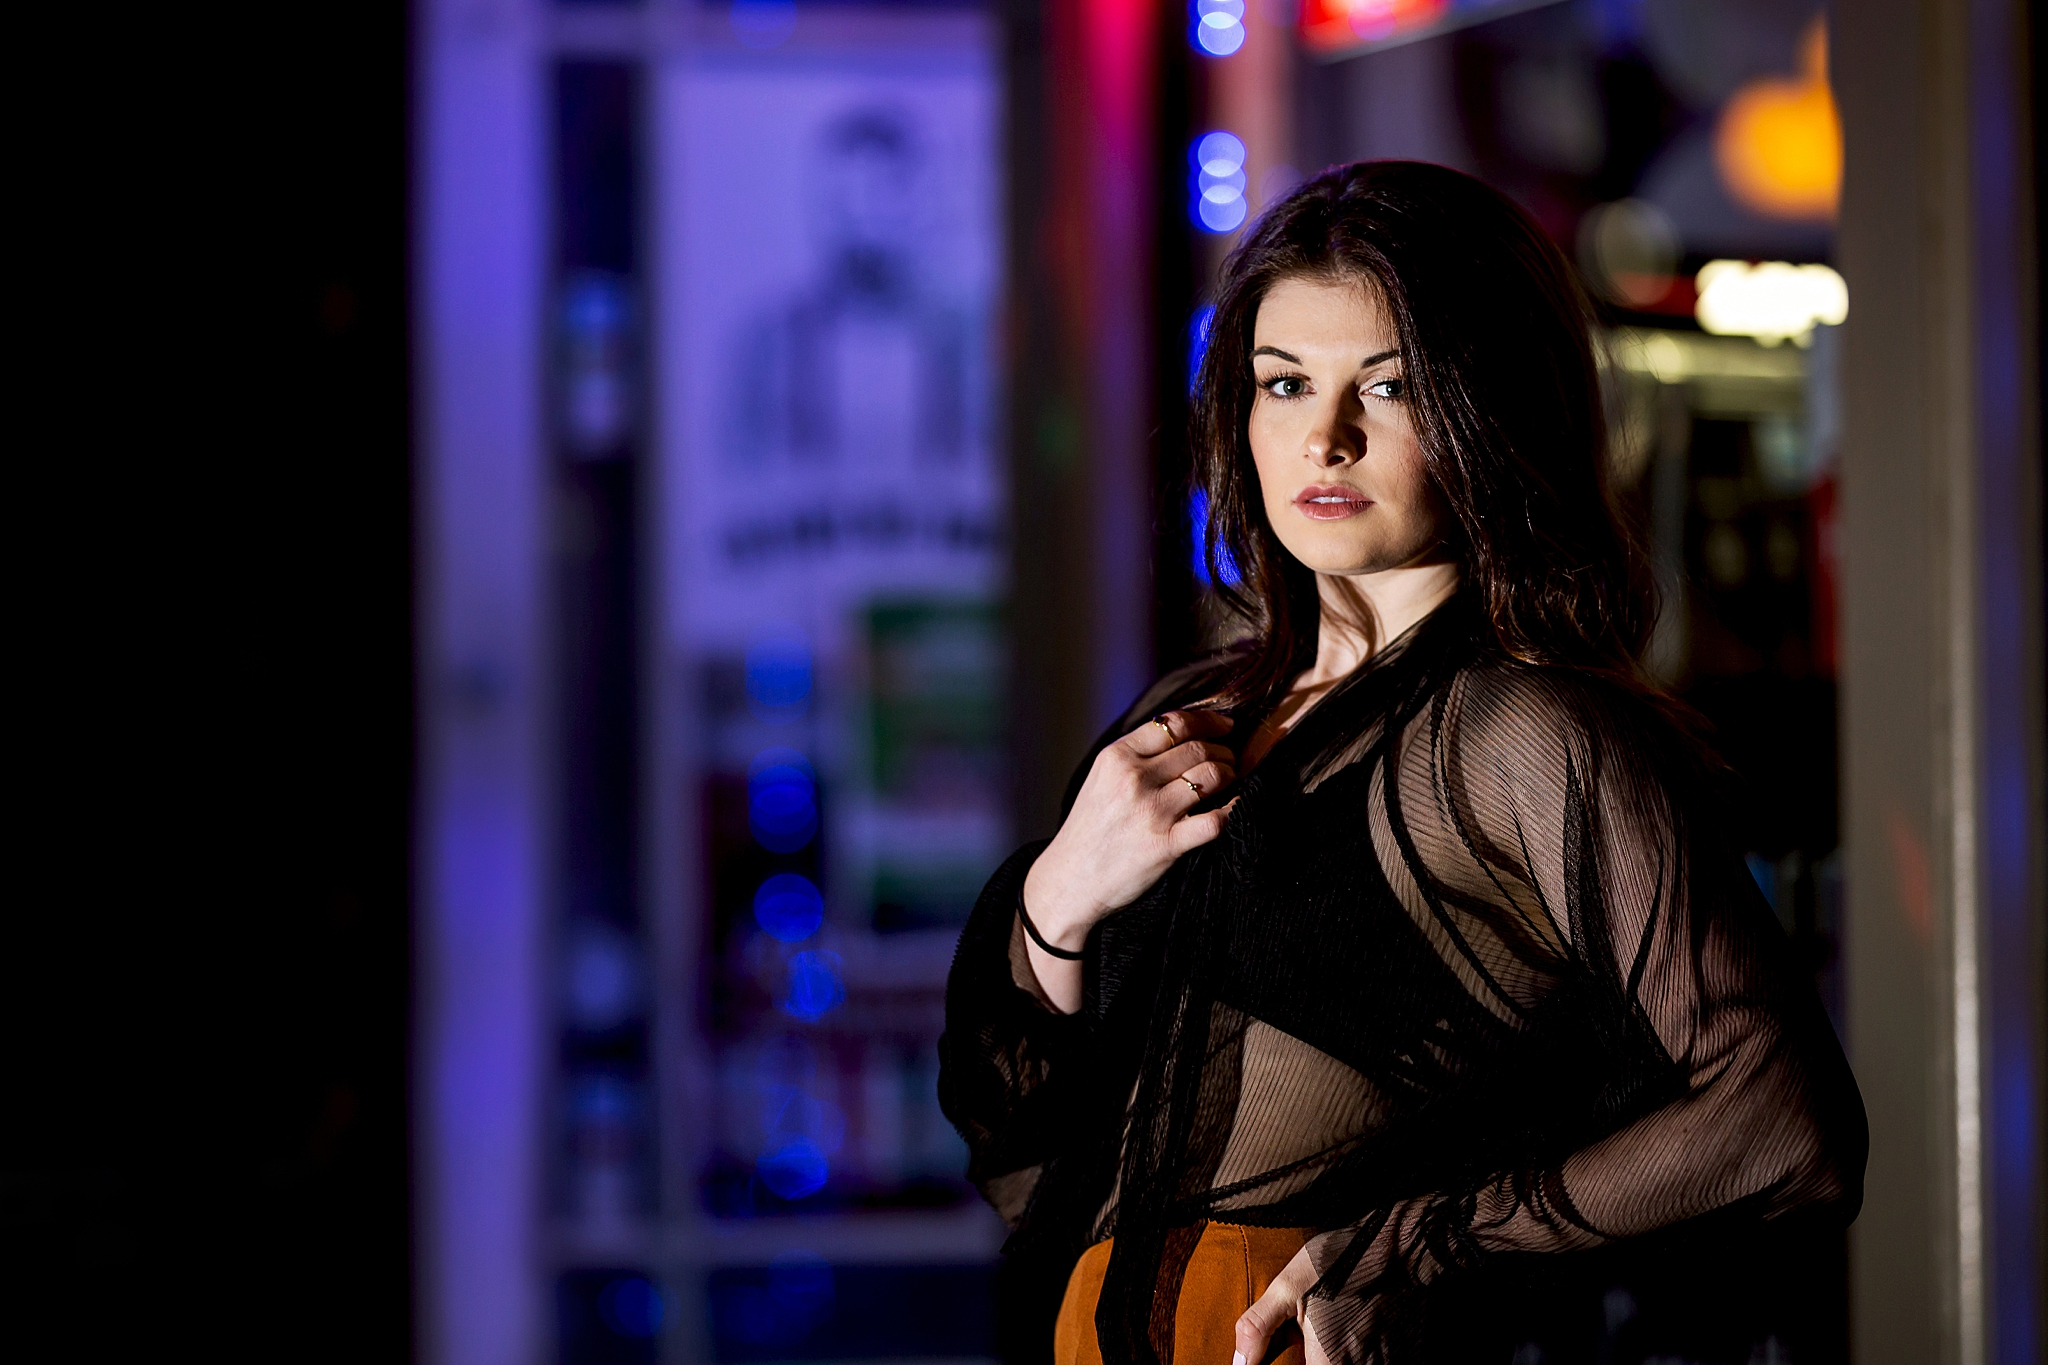 Kayla Anderson Downtown San Diego, California Nightlife Photoshoot - Victoria Irene Photography